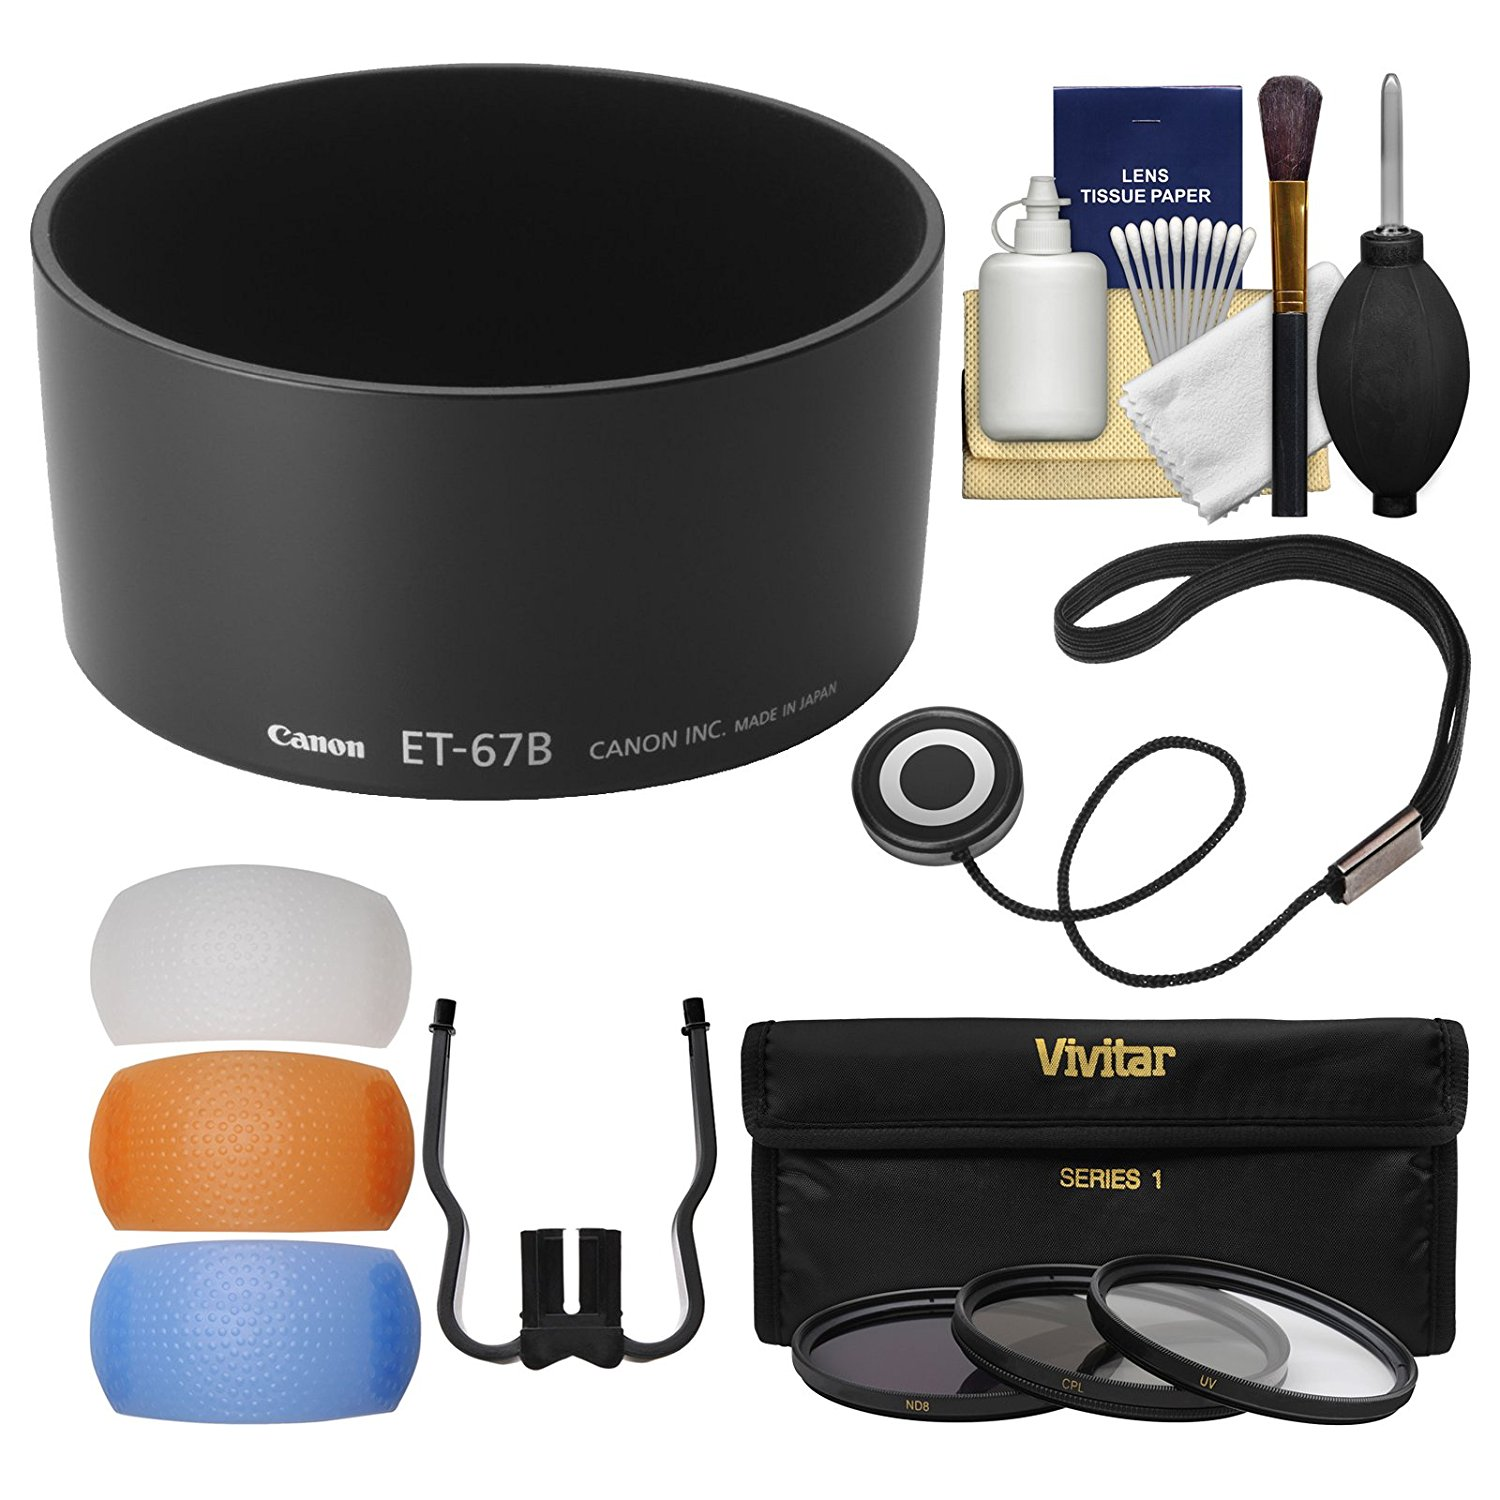 Canon ET-67B Lens Hood for EF-S 60mm f/2.8 Macro with 3 UV/CPL/ND8 Filters + Flash Diffuser + Cleaning Kit